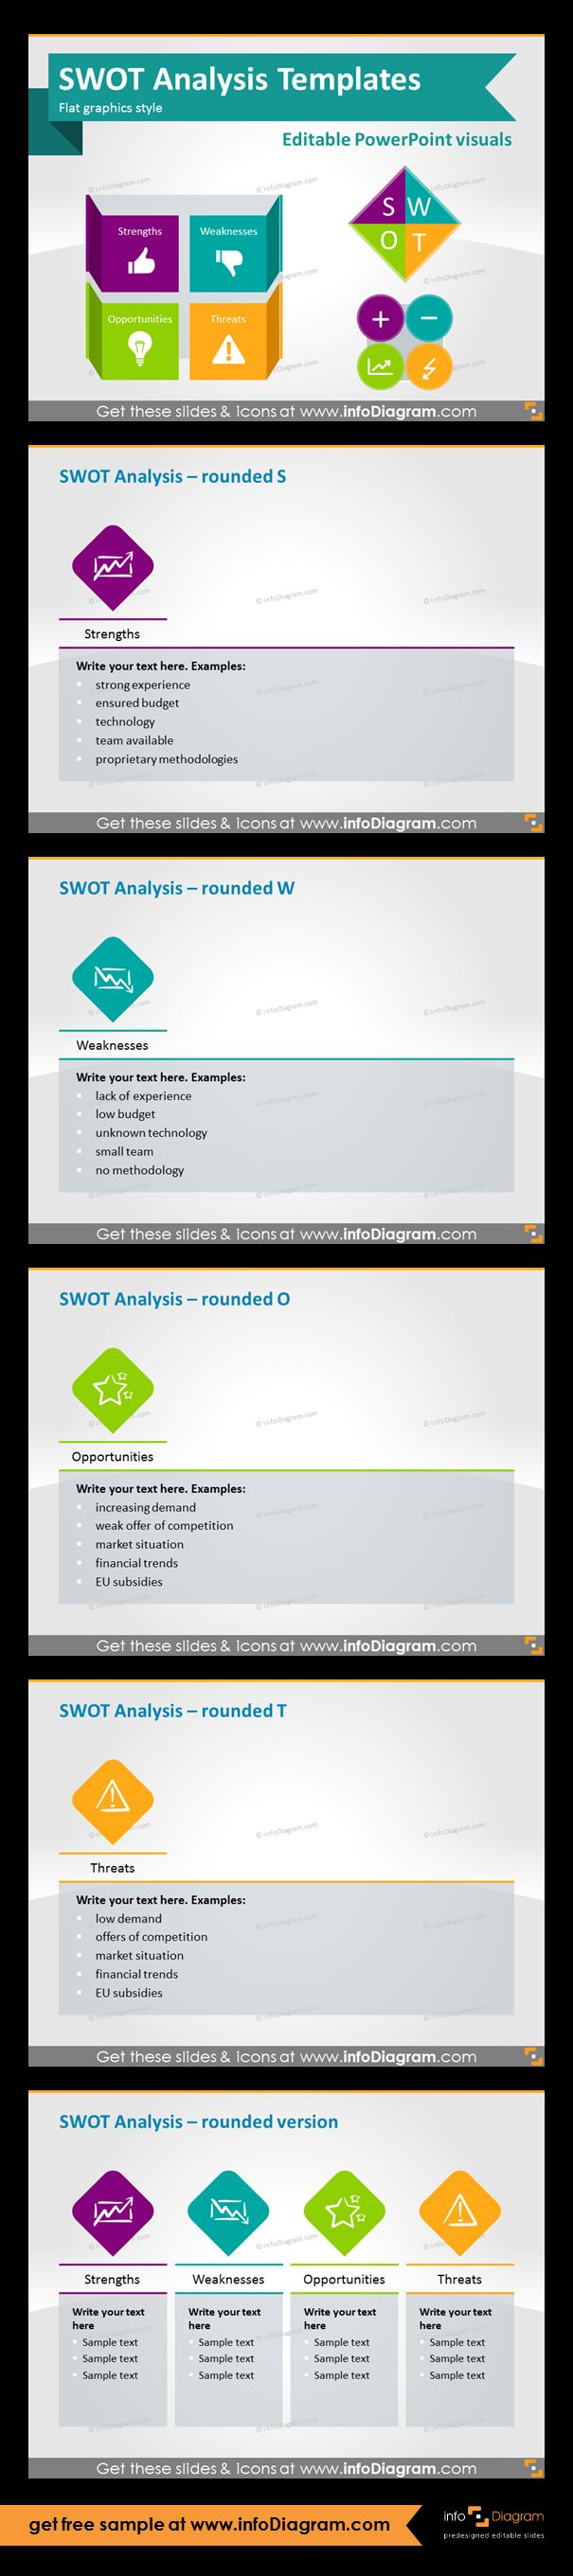 SWOT analysis template diagrams. Rounded version version with each element separately and with examples.  Unique editable icons representing Strengths, Weaknesses, Opportunities, Threats. Fully editable shapes in PowerPoint (color, filling, size - thanks to vector format).